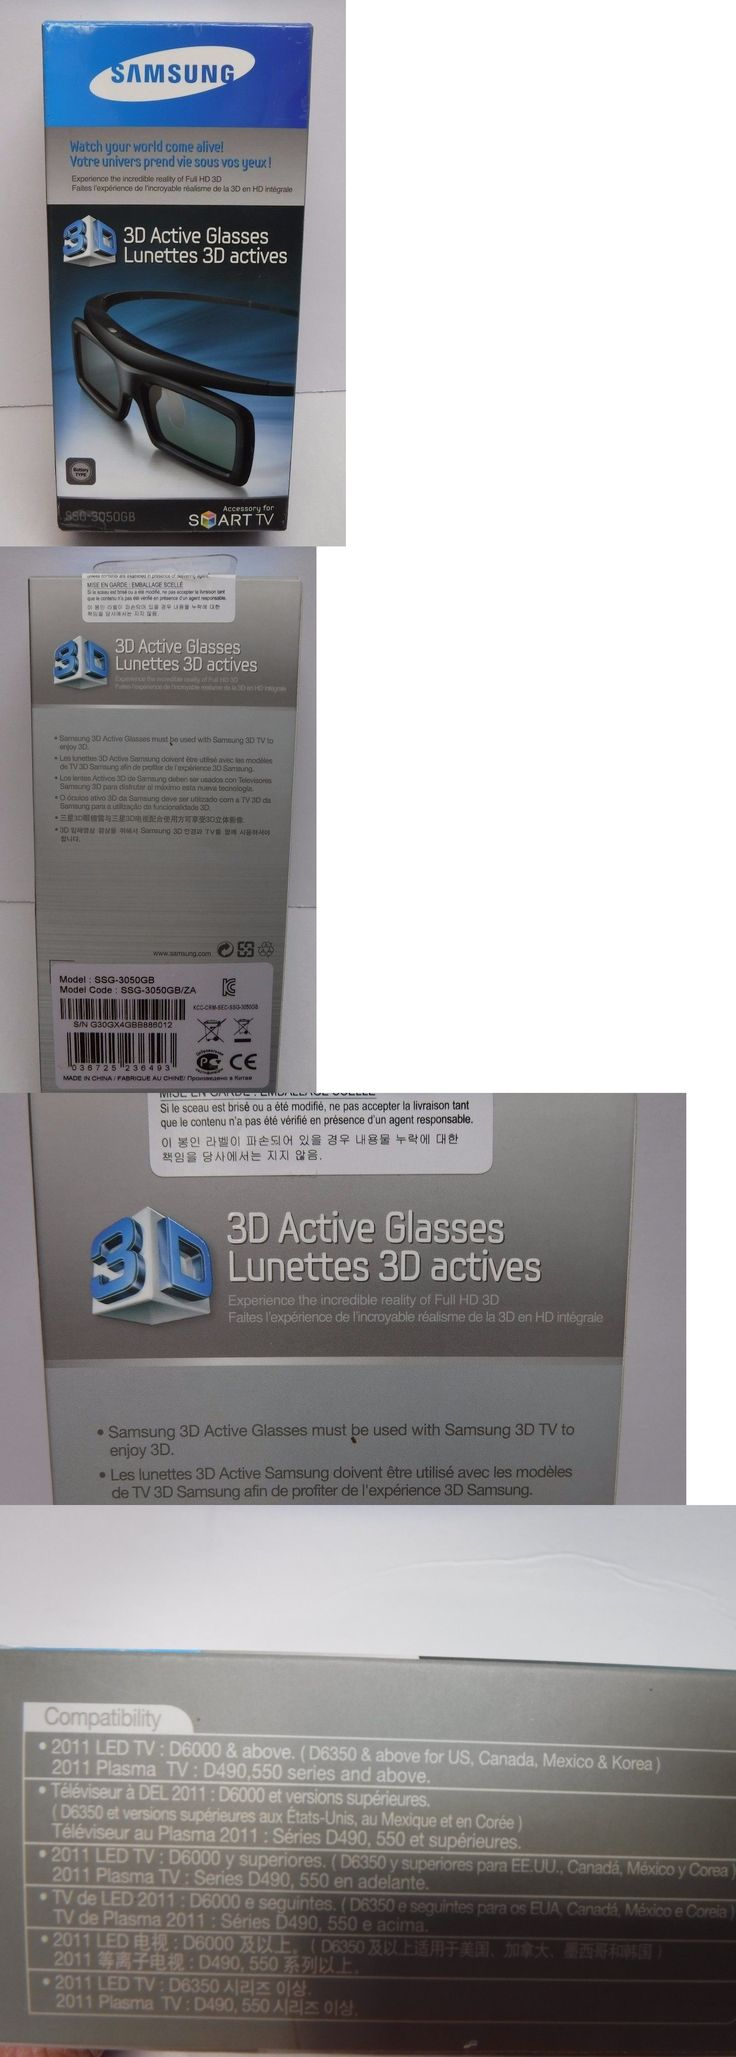 3D TV Glasses and Accessories: Samsung Ssg-3050Gb 3D Active Glasses Black New In Box -> BUY IT NOW ONLY: $44.5 on eBay!